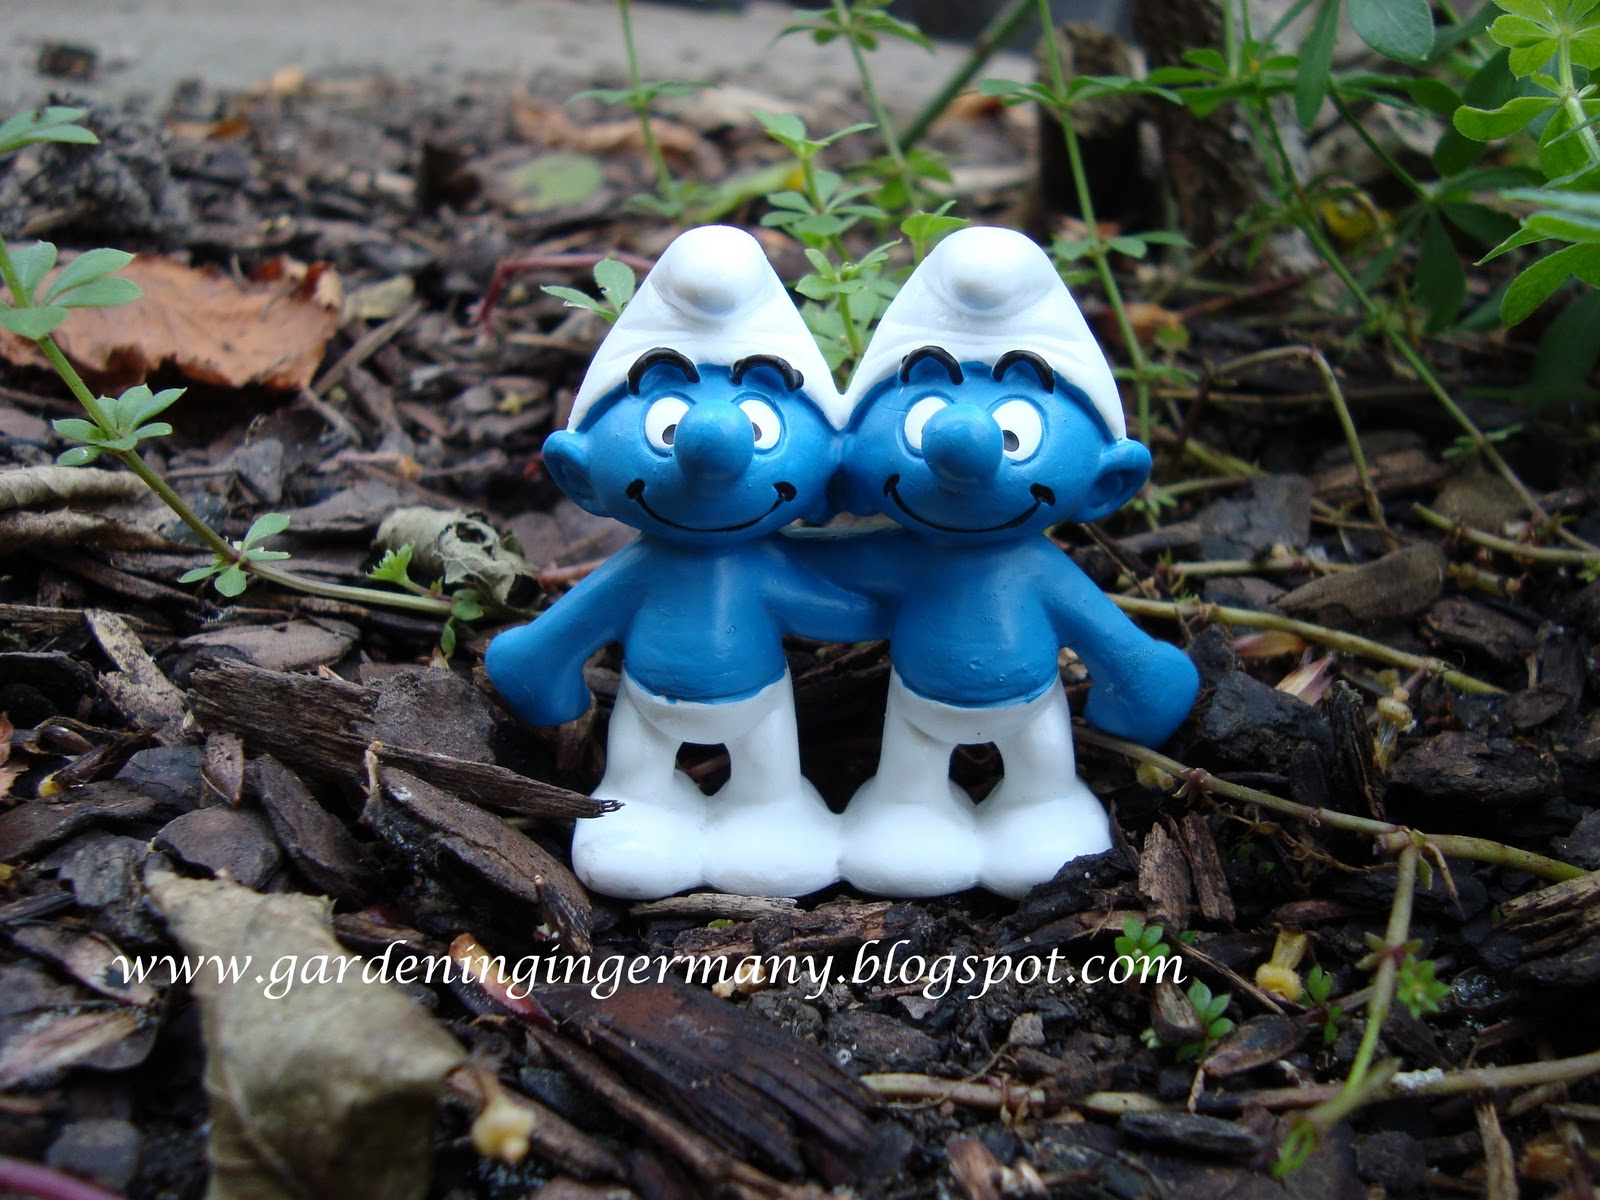 Gnome 4: Gardening In Mannheim, Germany: A Gnome's Tale Of